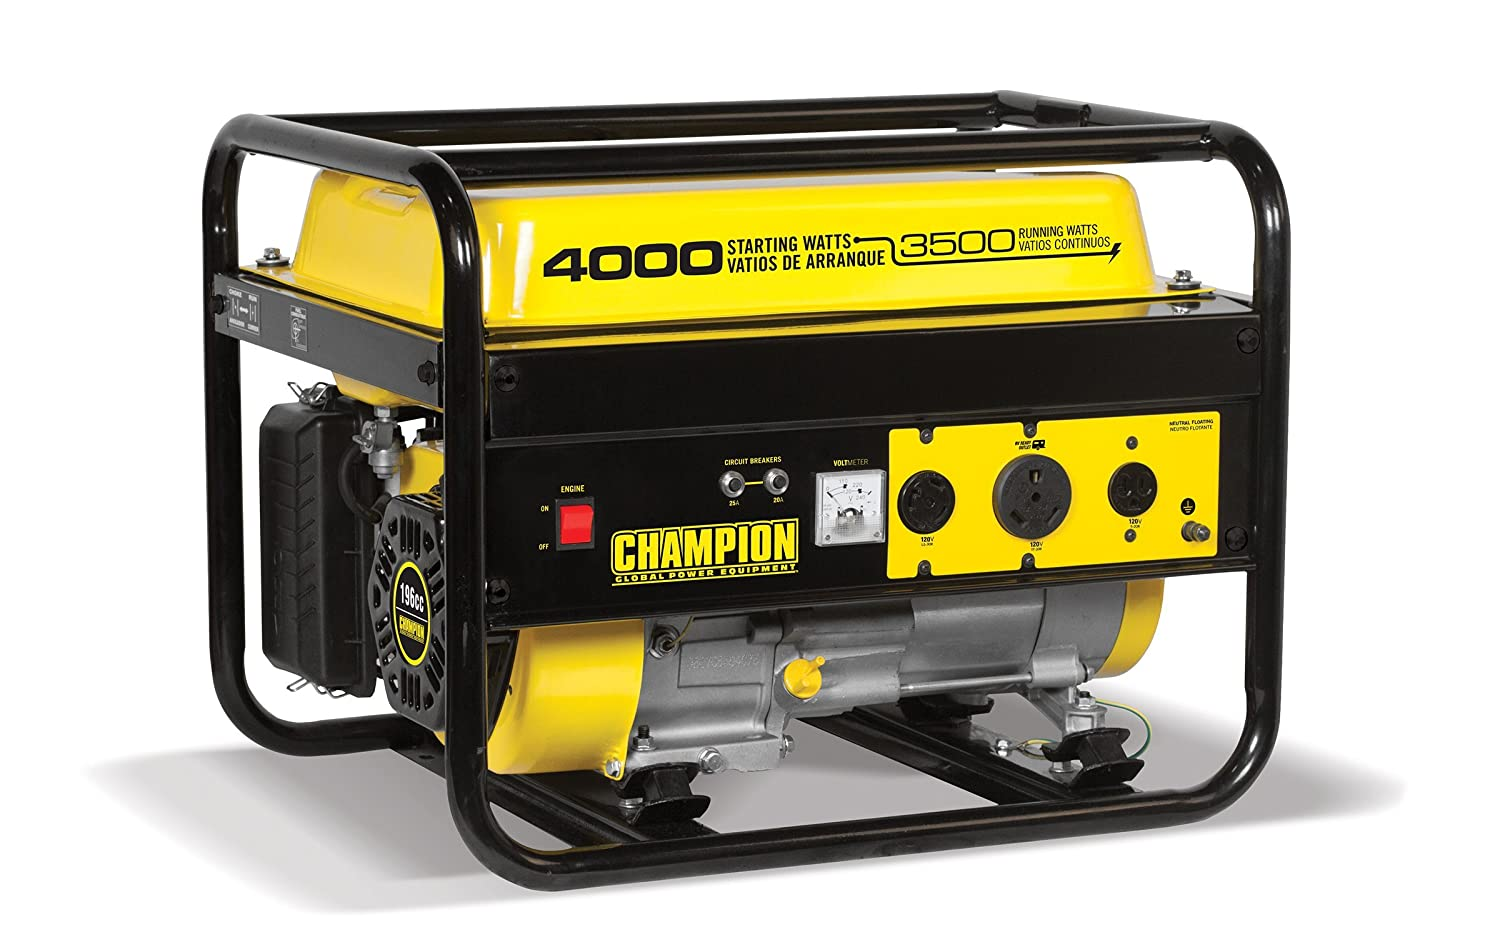 Champion 3500-Watt RV Ready Portable Generator CARB